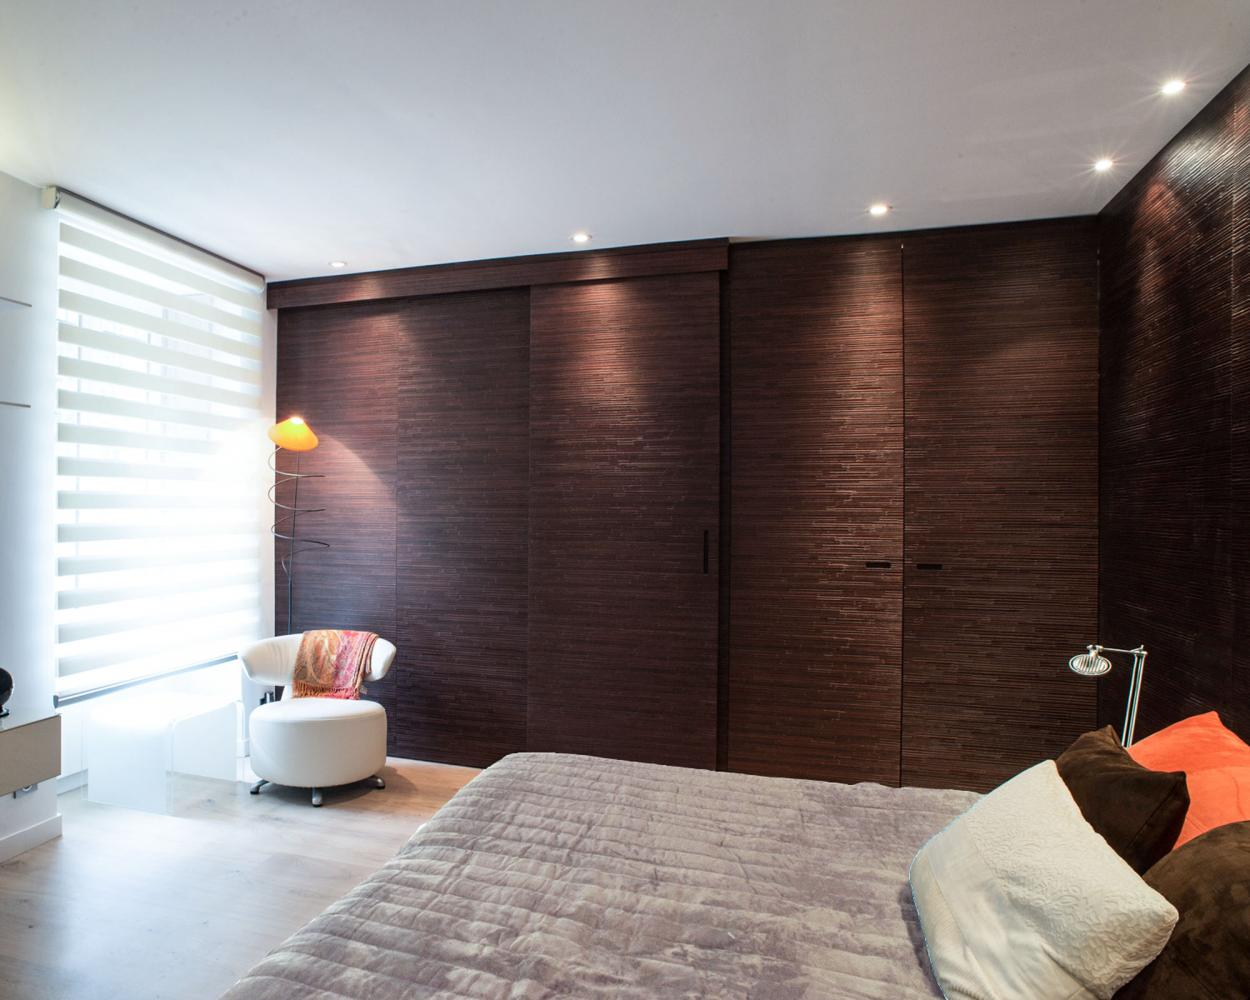 Laurameroni furnishing a beautiful luxury private apartment in paris france for a modern interior design inspiration